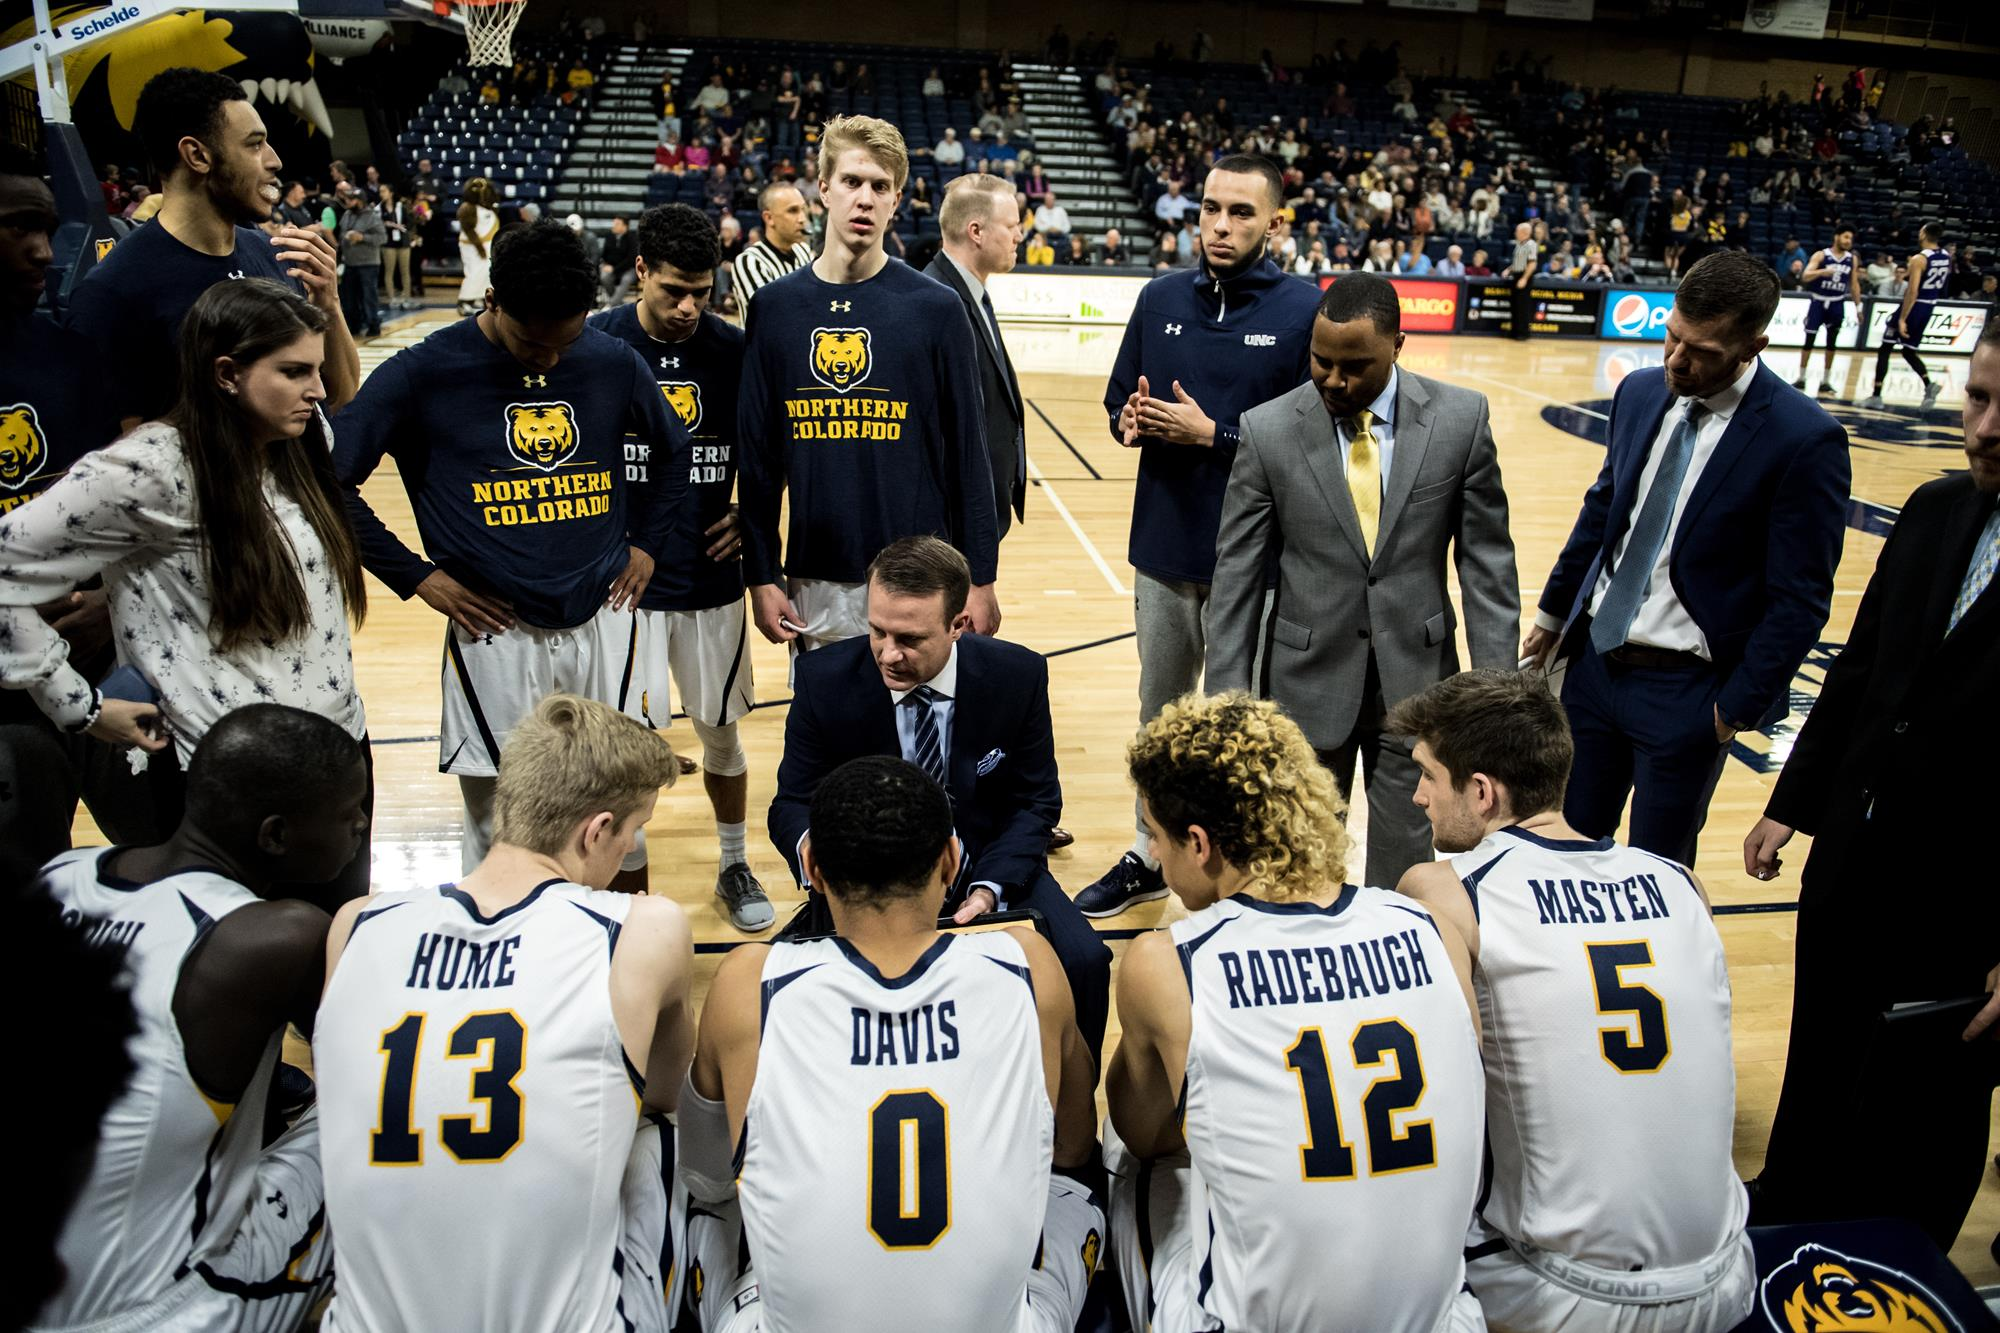 Northern Colorado Bears Basketball 2019-20